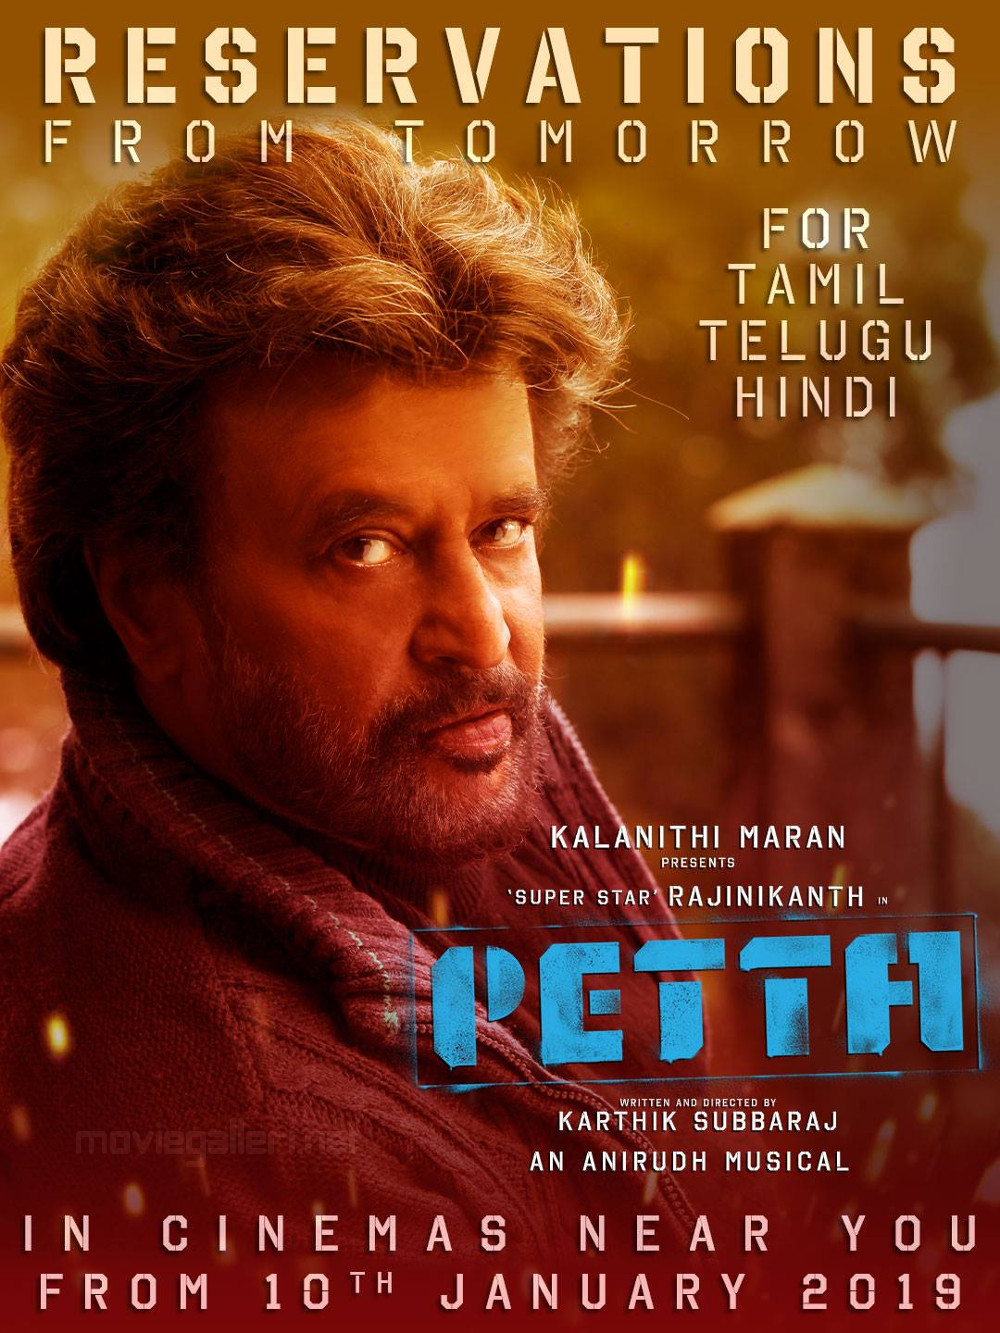 Rajinikanth Petta Movie Reservations from Tomorrow Poster HD